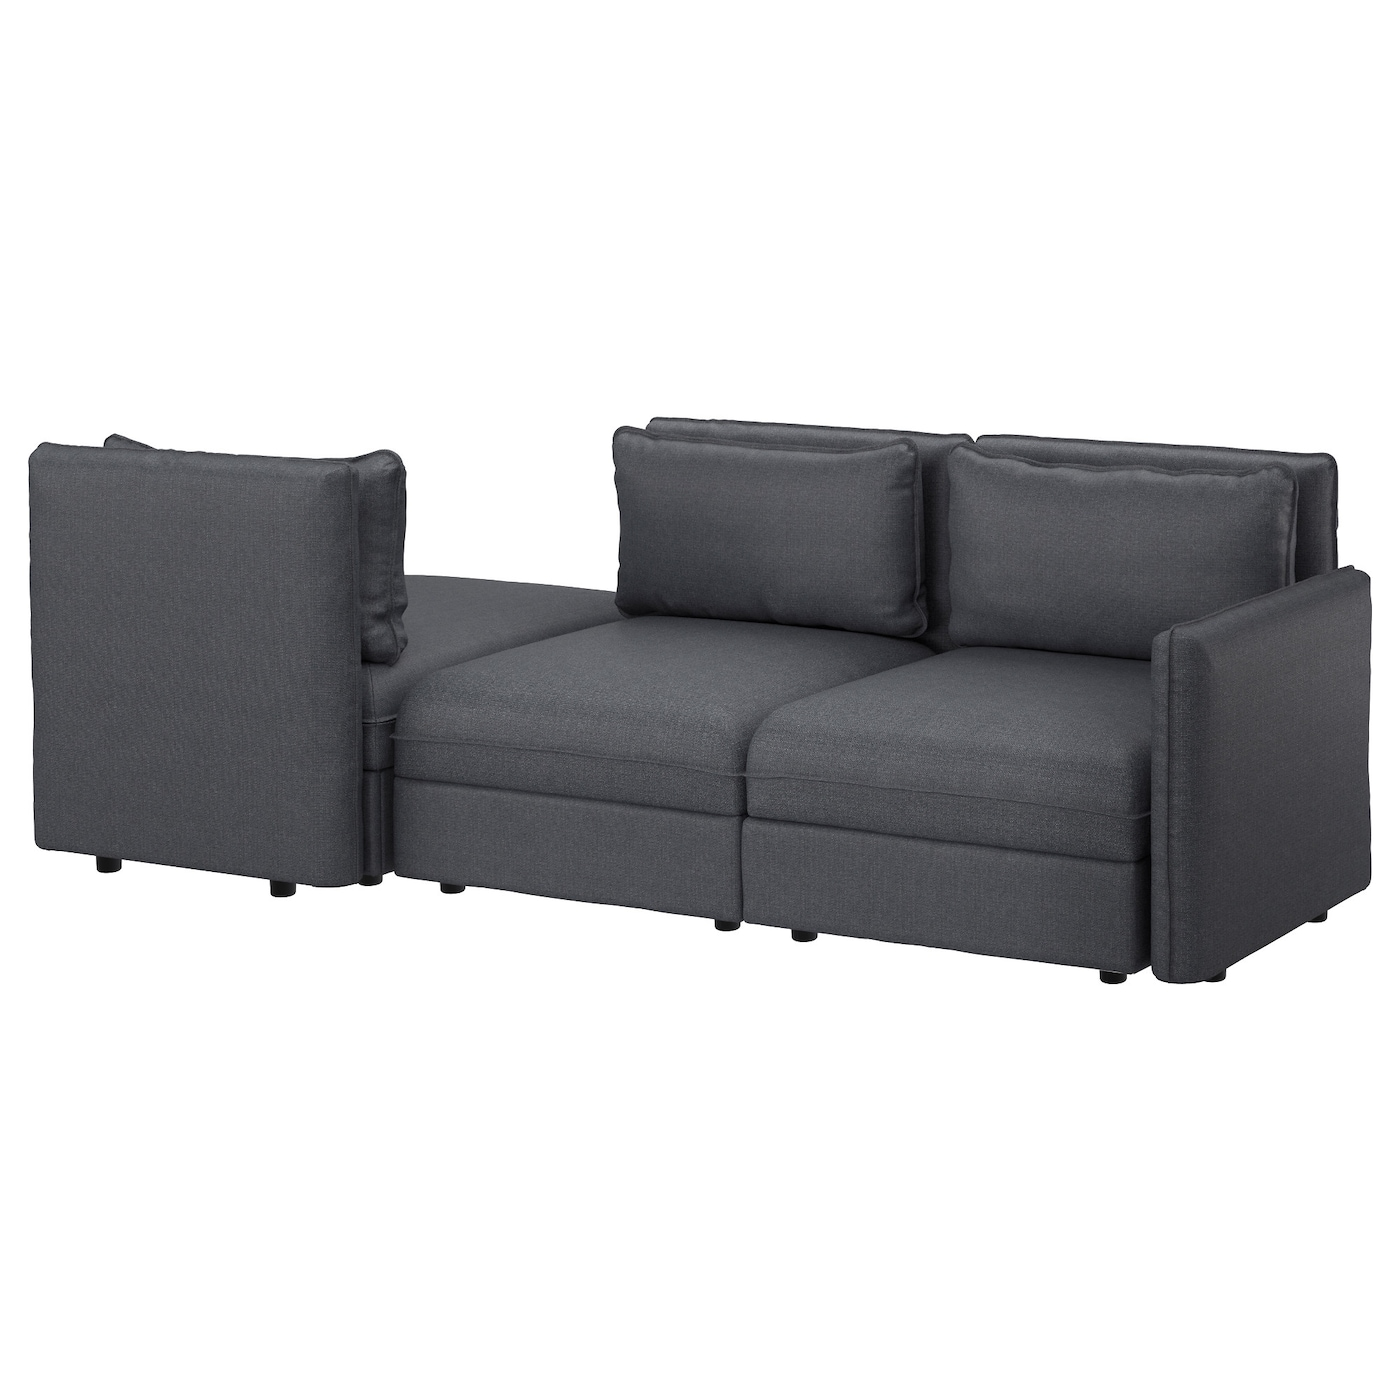 vallentuna canap 3 places couch hillared gris fonc ikea. Black Bedroom Furniture Sets. Home Design Ideas